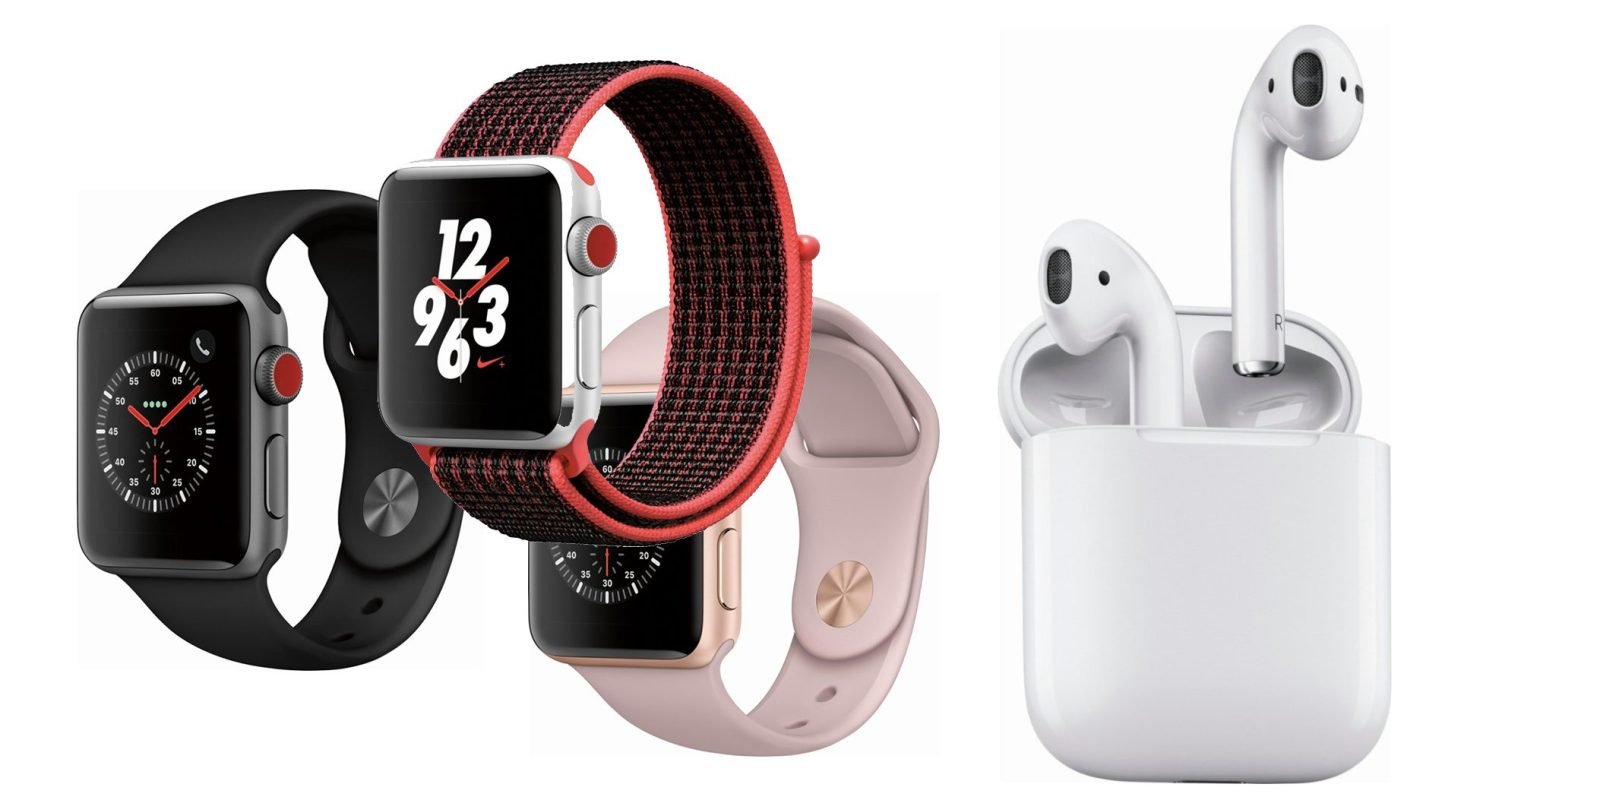 Apple Watch, AirPods, and more will officially be hit with 15% tariffs starting Sunday